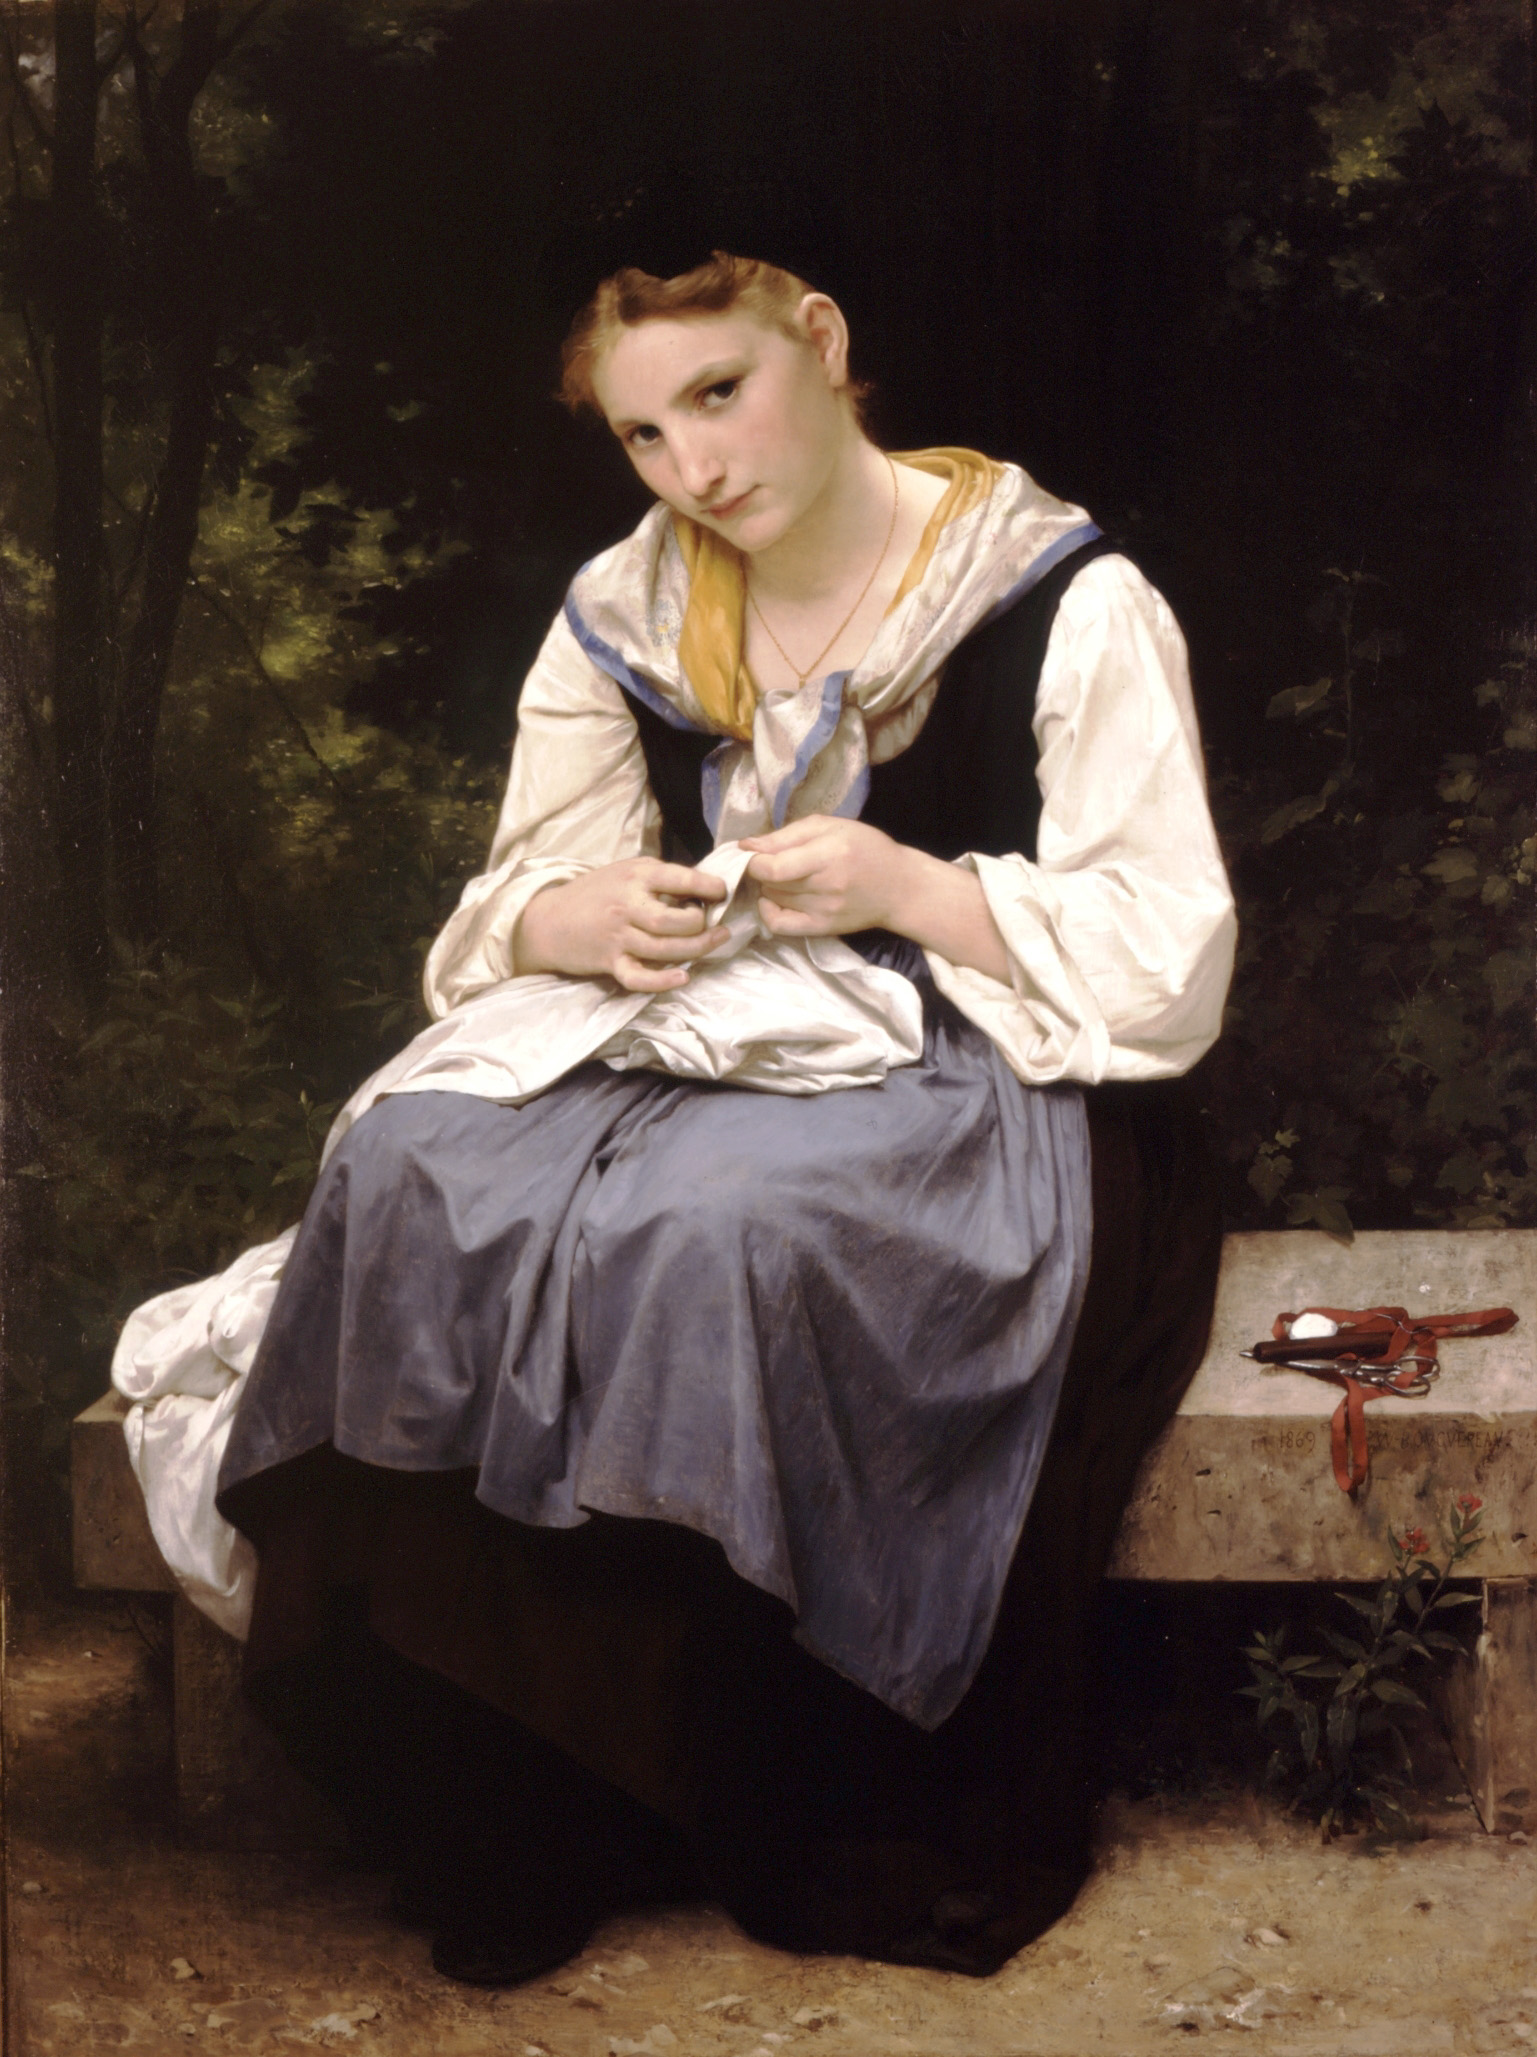 William Bouguereau (1825-1905)  Jeune Ouvriere [Young Worker]  Oil on canvas, 1869  50 3/4 x 37 7/8 inches (129 x 96.5 cm)  Private collection